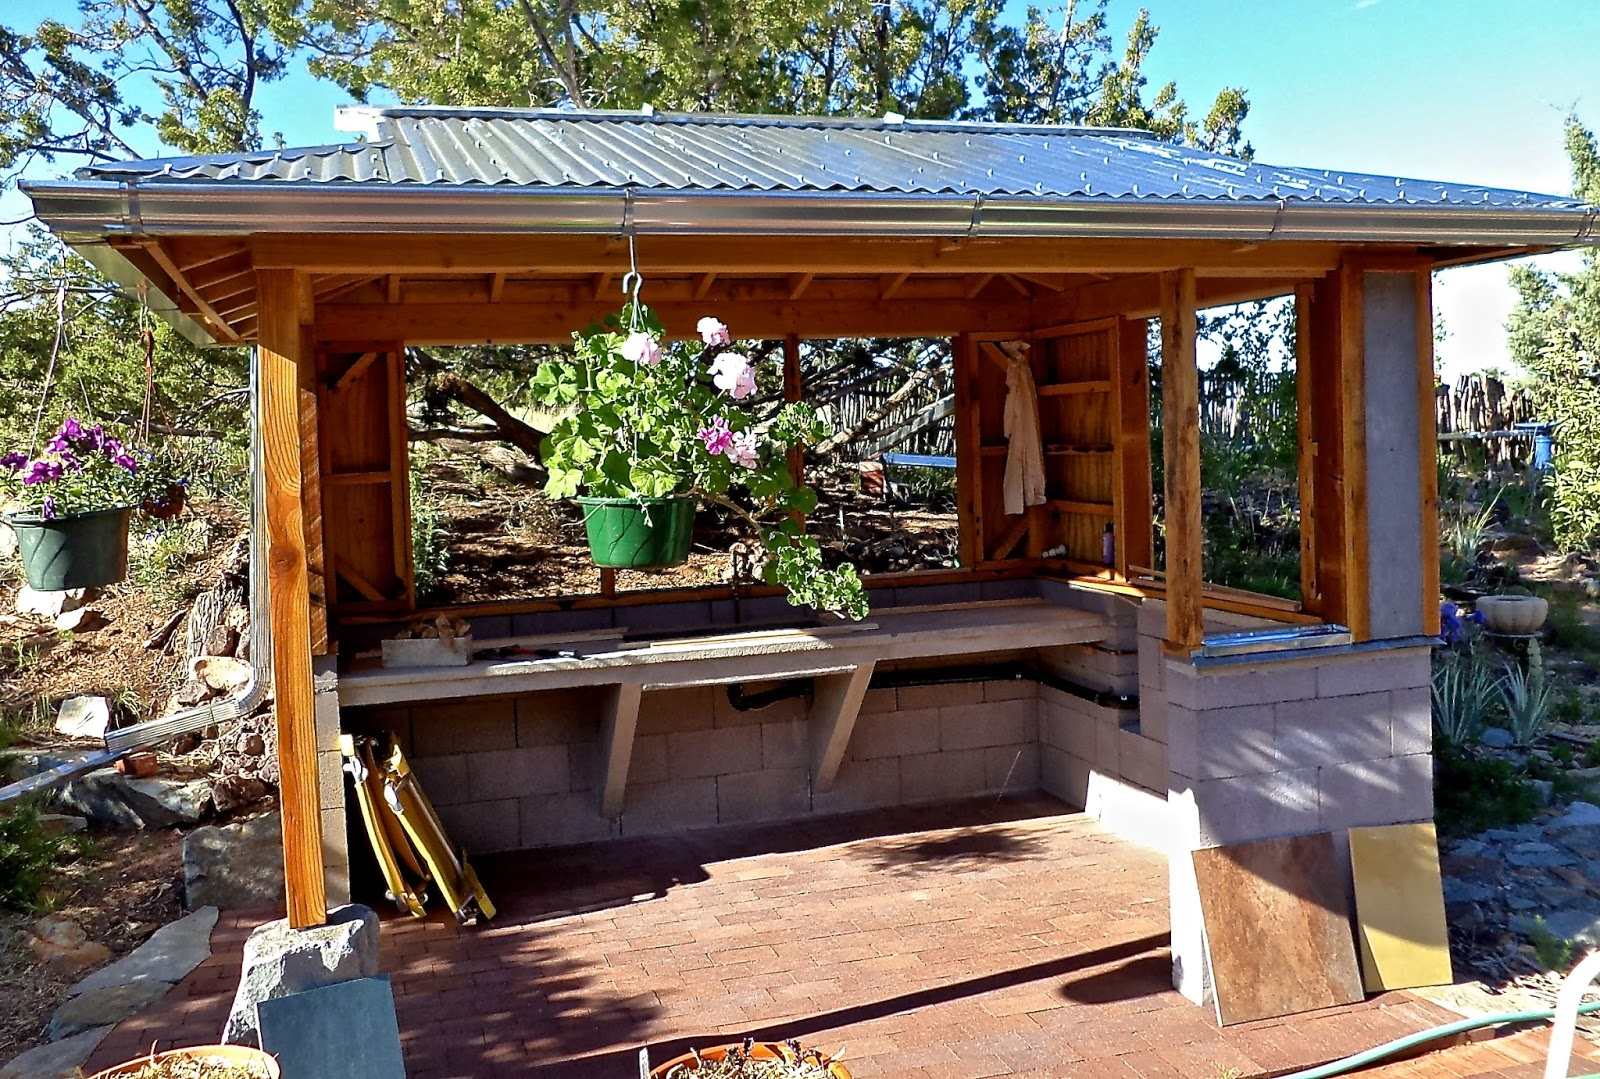 Alt. Build Blog: Building An Outdoor Kitchen: #2 Framing ... on Backyard Bar With Roof id=42837